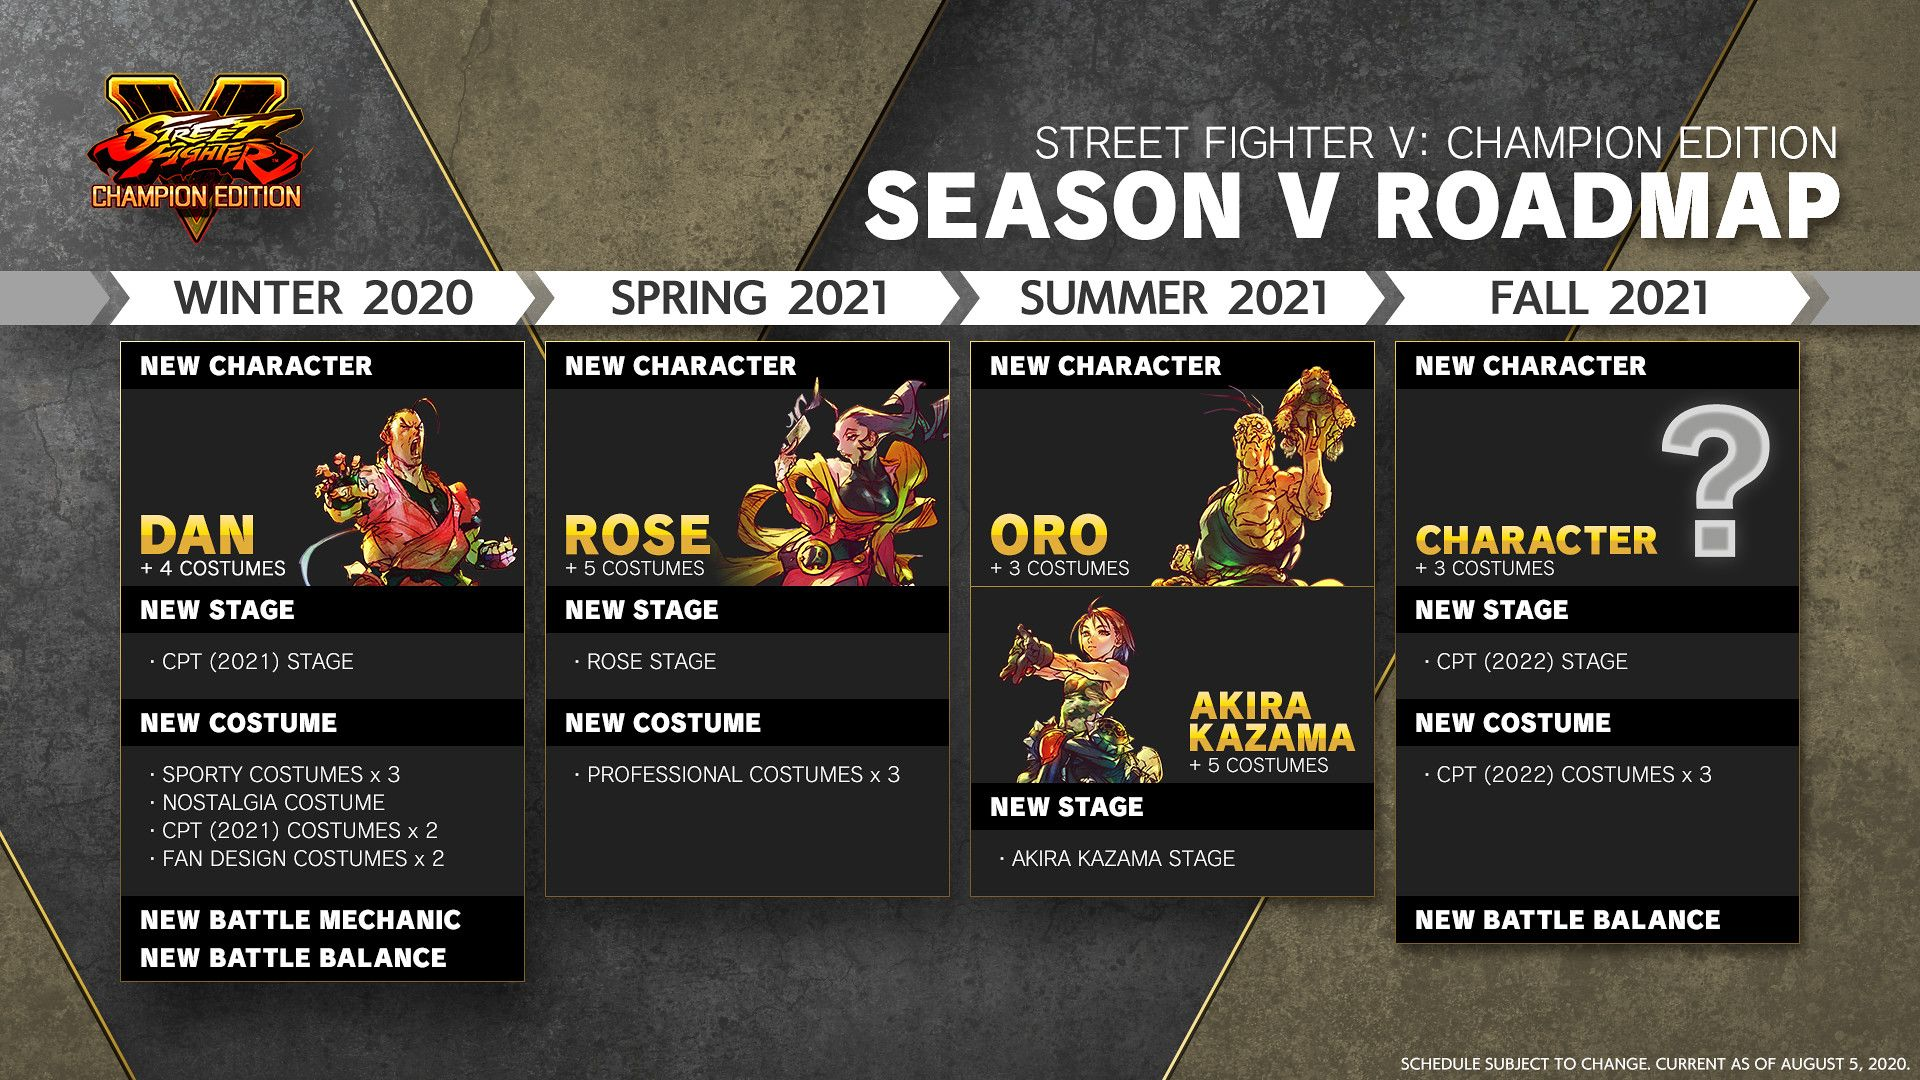 Season V Roadmap